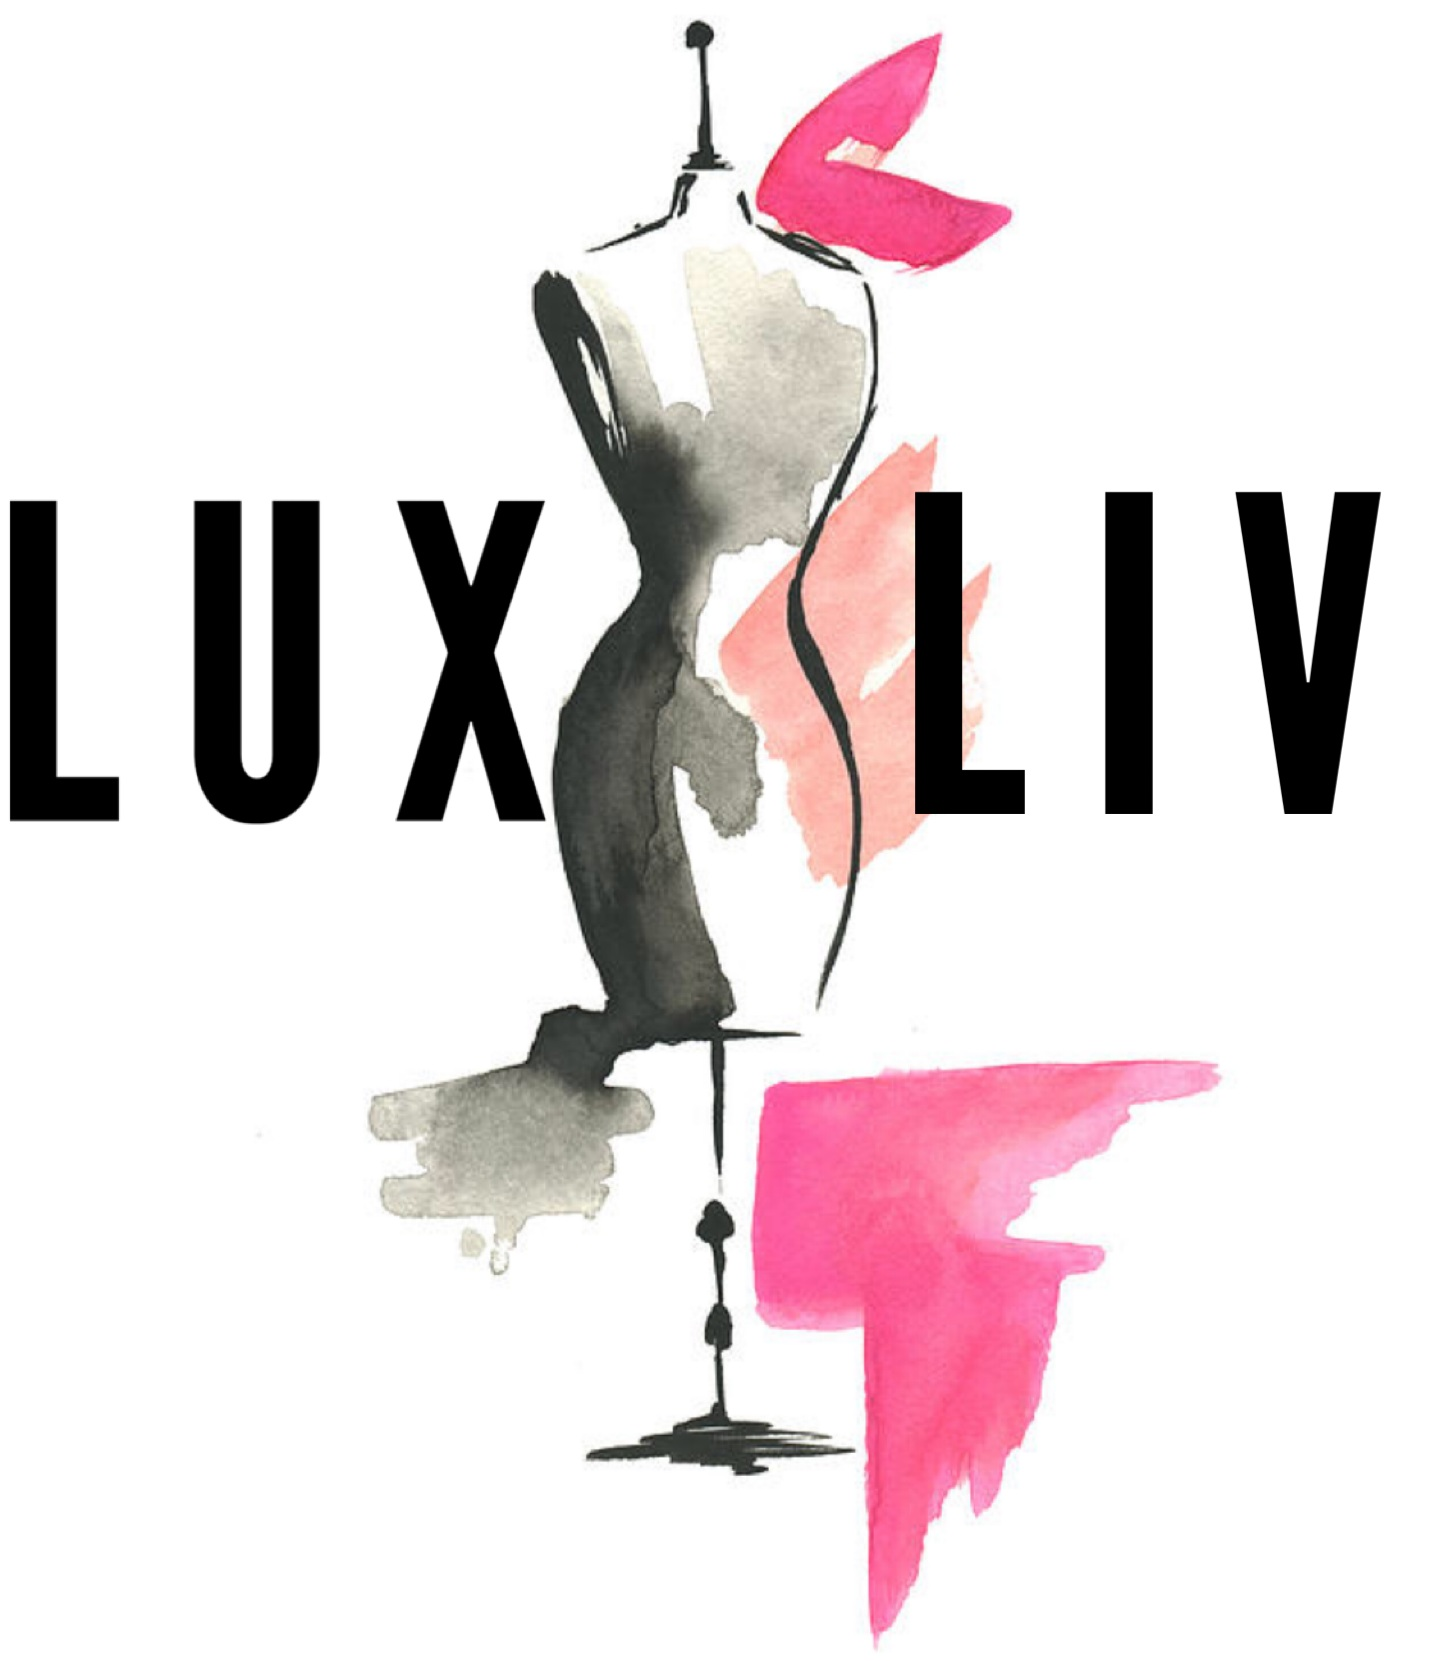 Lux Liv Boutique   Our fashion enthusiast Tesha Smith has always had an eye for making affordable fashion pieces look expensive. She realized that fashion is not about the brand, it is about the style. So she started making vintage tees for herself. She received so many compliments so she decided to share her love for the simplicity of grunge tees, with the rest of the world. Her vintage grunge tees became the focal point of her brand. Later she expanded her brand by carrying accessories, dresses, bodysuits and jumpsuits. Lux Liv Boutique offers luxury fashion at a price you can live with. Our pieces are unique, and fashion forward essentials that inspire creativity and confidence.  We are centered in the heart of beautiful Los Angeles. We offer clothing and accessories for women of all walks of life, body types and personalities. Lux Liv offers something for each woman and every occasion. Whether you need an edgy grunge tee for a date night, a sexy dress for a girl's night out or a fun and flirty ensemble for a mid day brunch. Our style is defined as the eclectic fusion of vintage, sexy and contemporary. We also accept specific jacket and t-shirt designs.